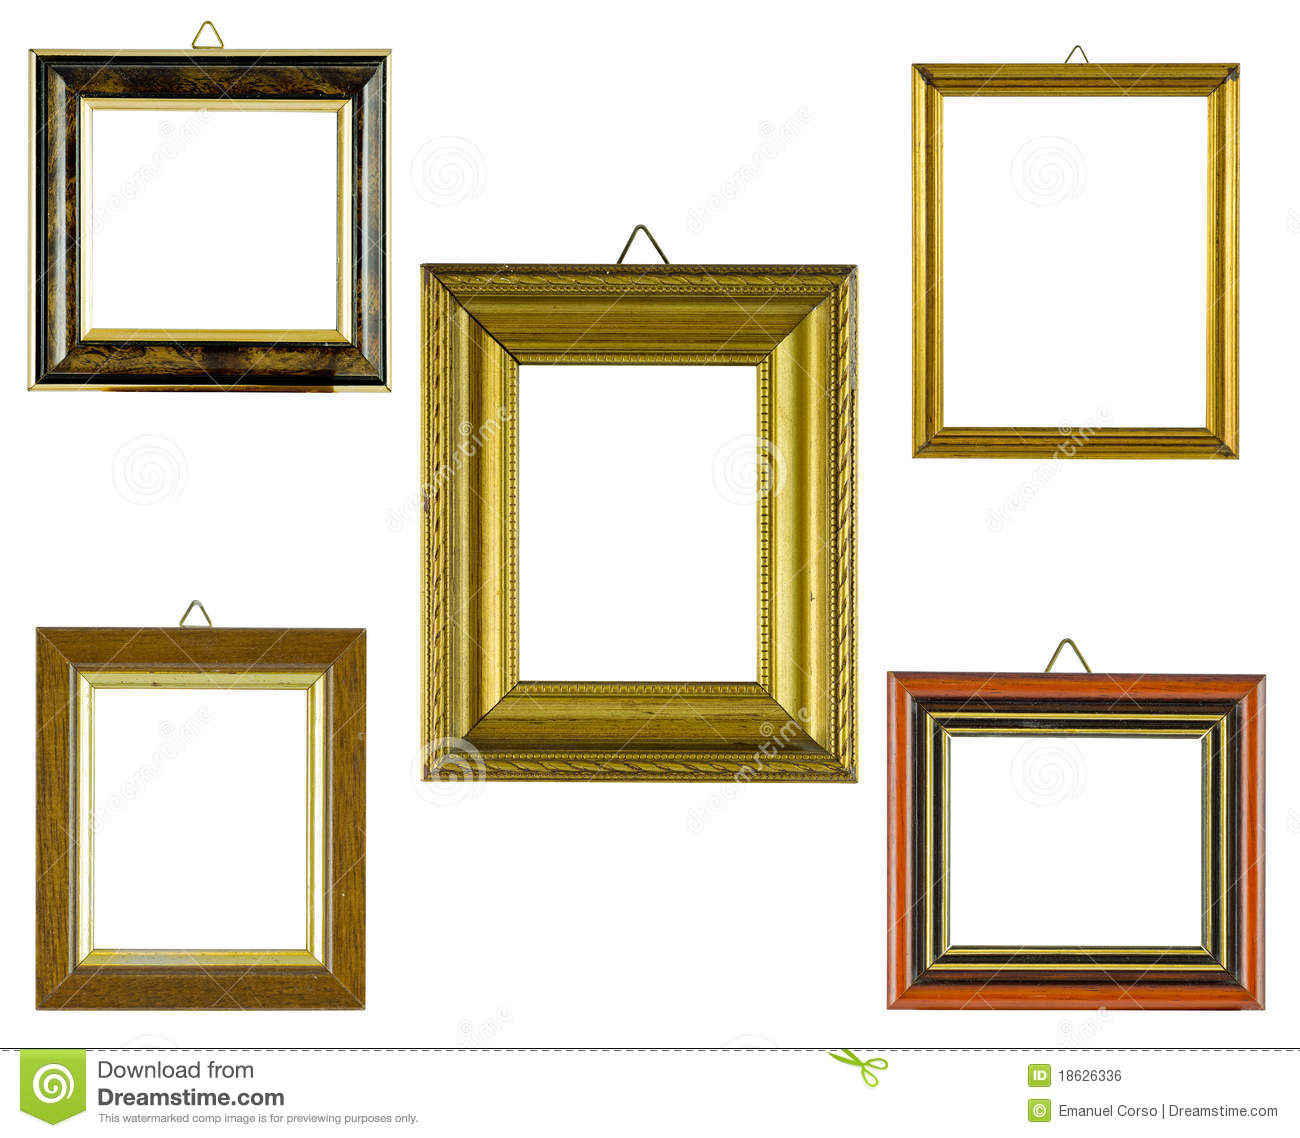 collage frames stock photo image of cover blank gallery 18626336. Black Bedroom Furniture Sets. Home Design Ideas